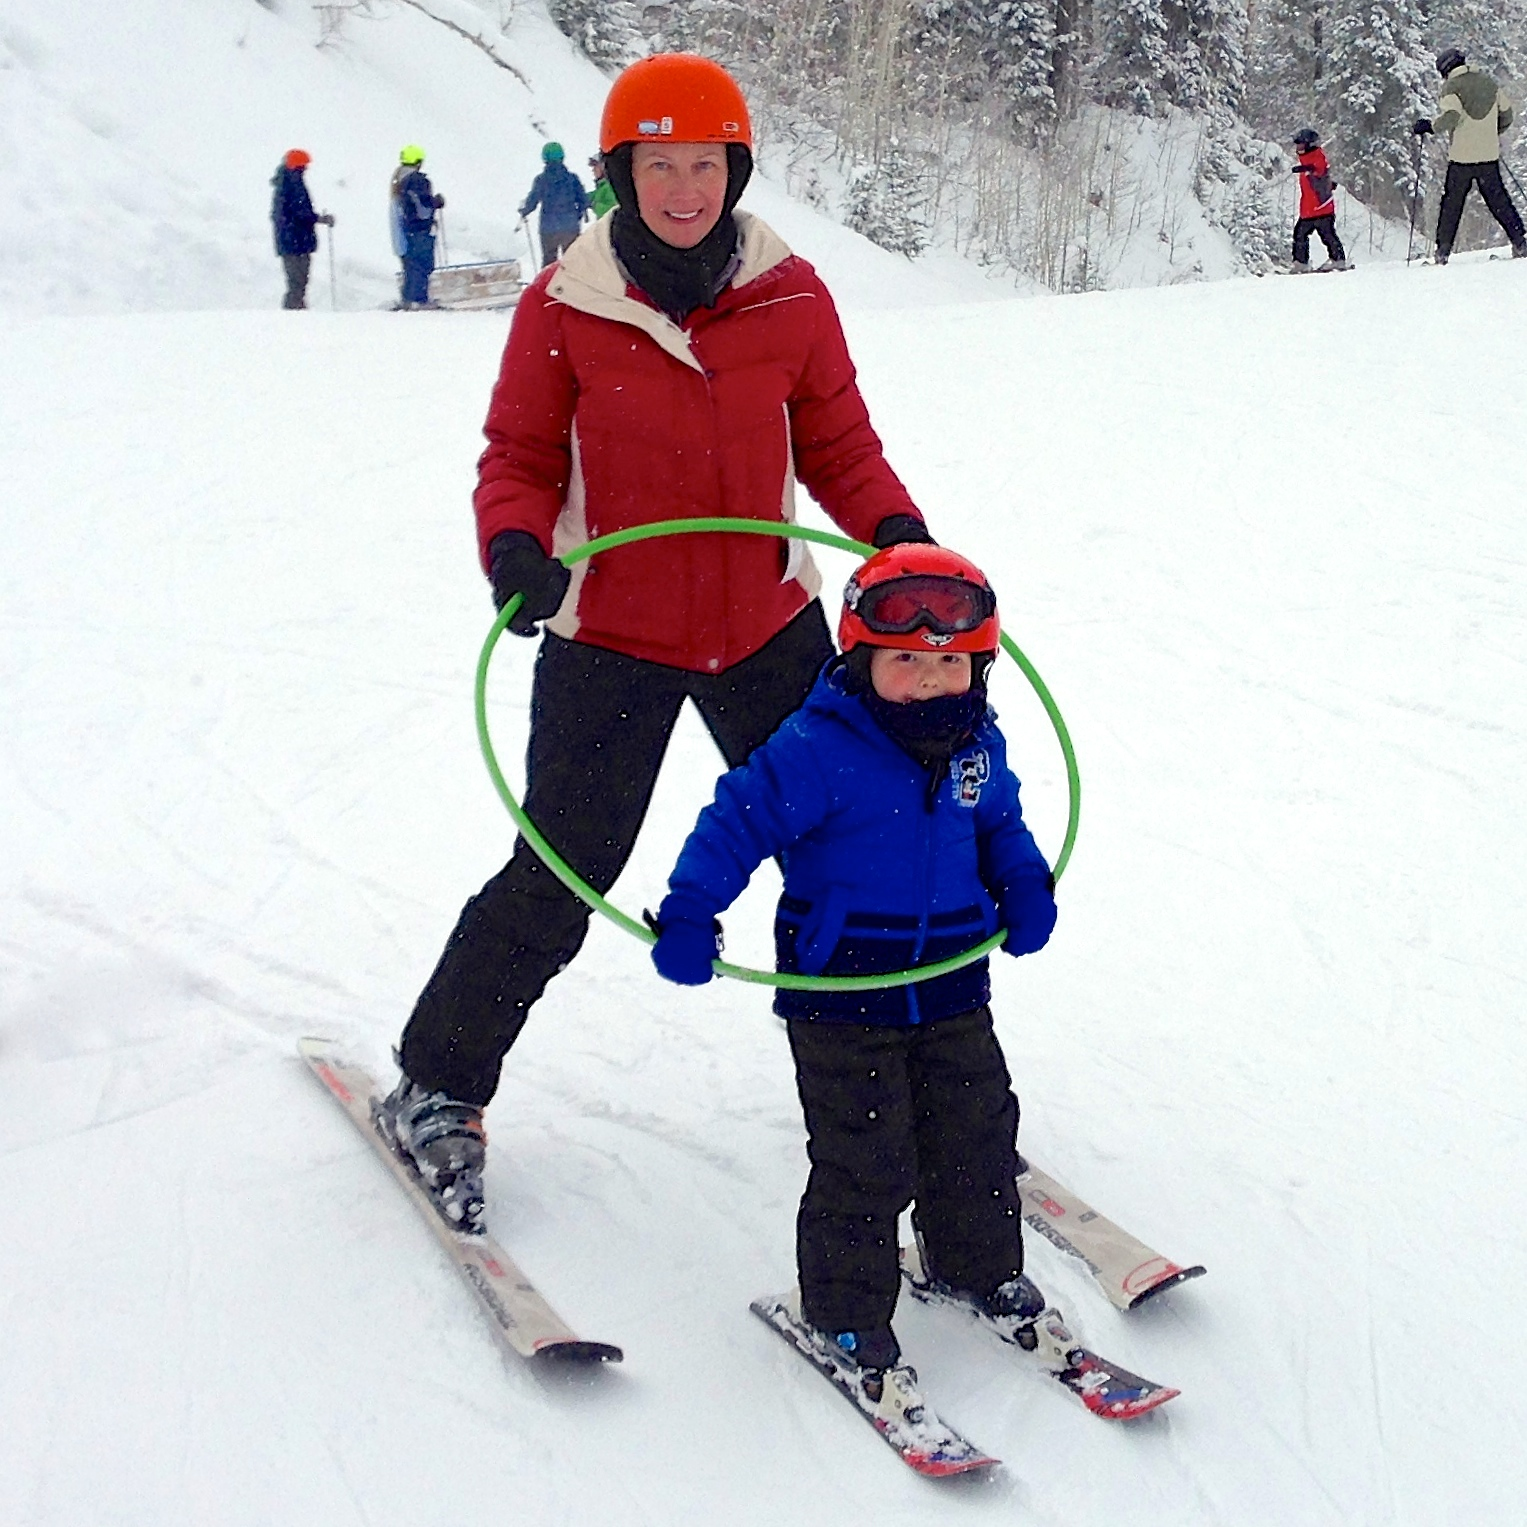 Kate and Jackson skiing